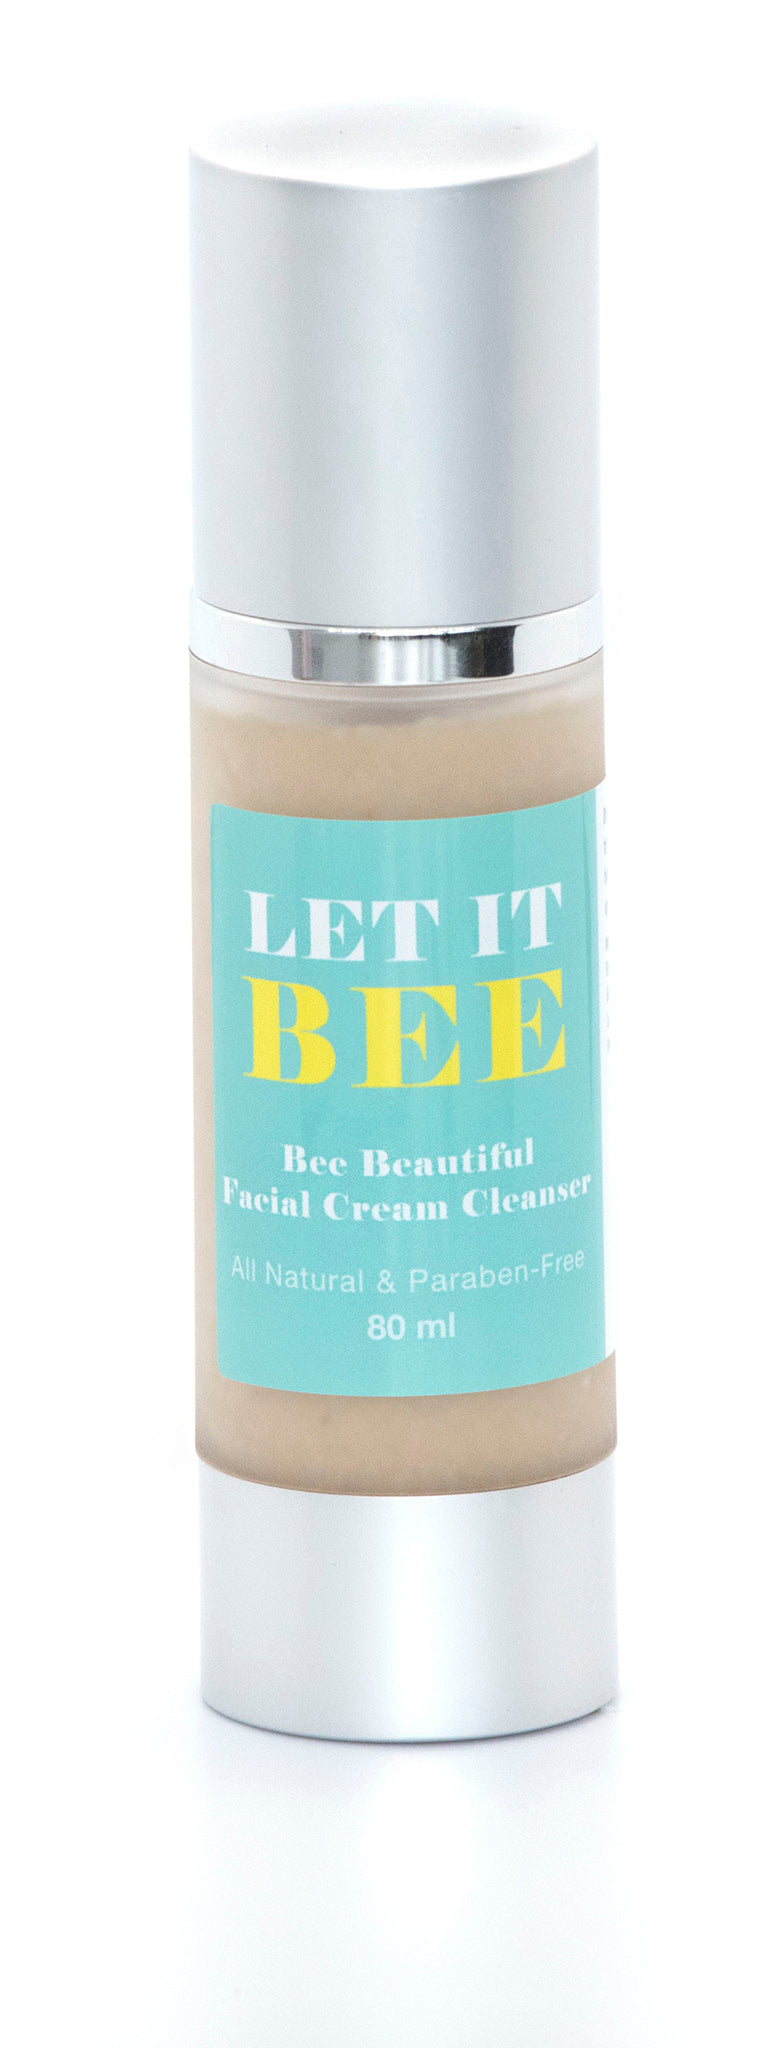 Bee Beautiful Facial Cream Cleanser